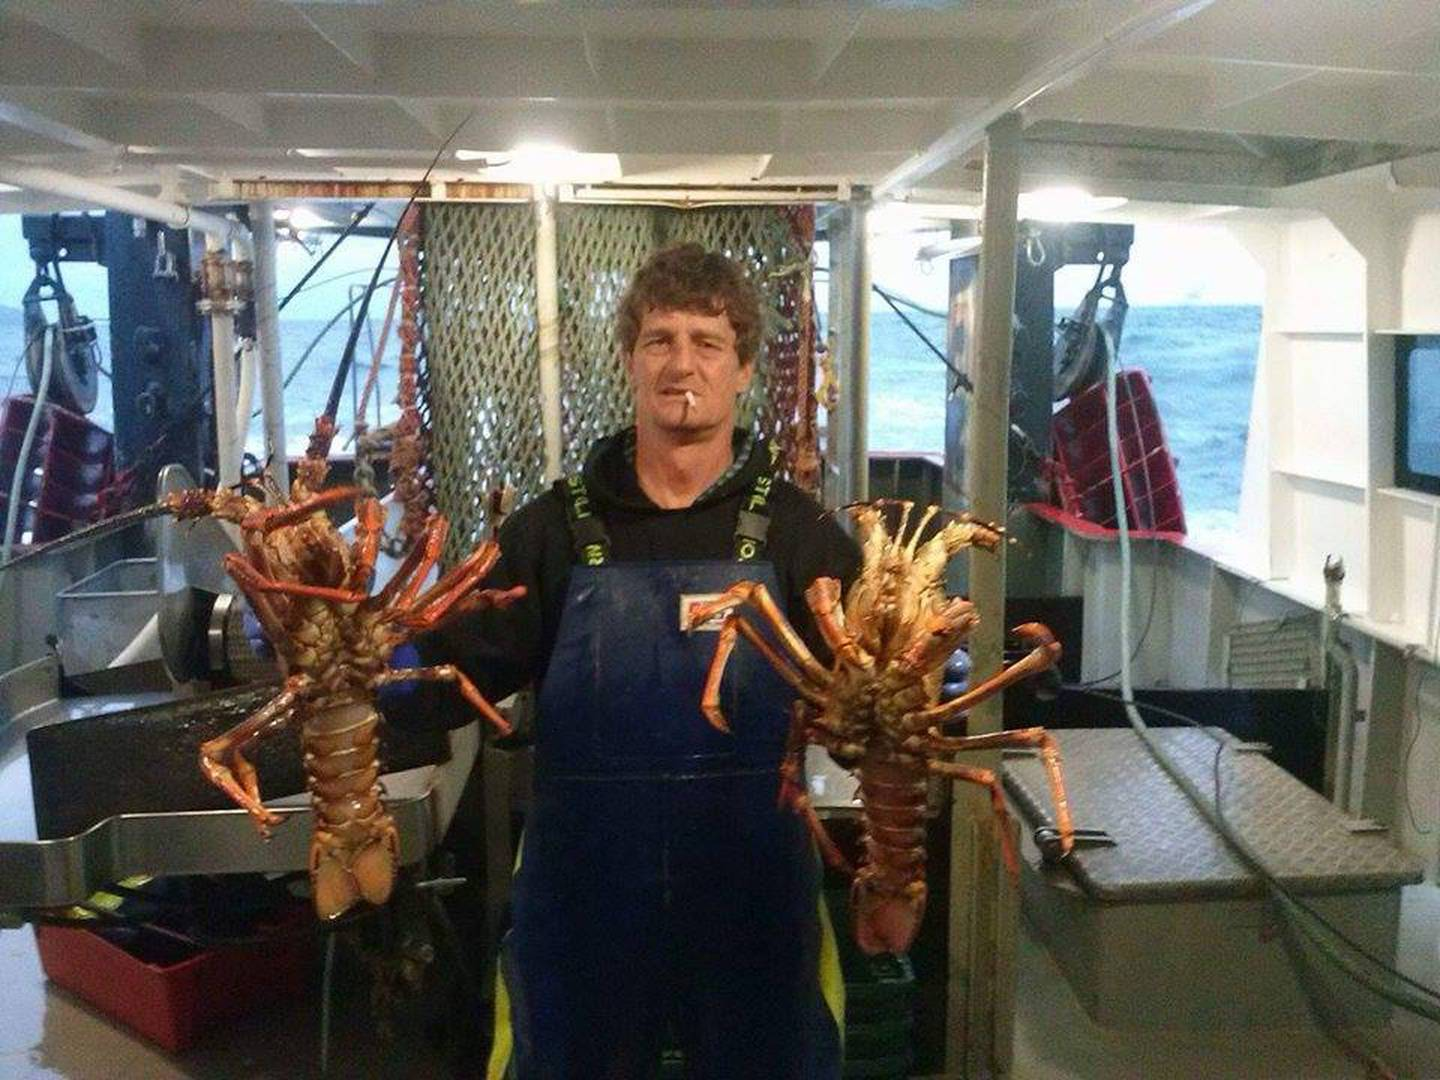 Jared Reese Husband, 47, of Timaru died in the Jubilee sinking in October 2015. Photo: Supplied